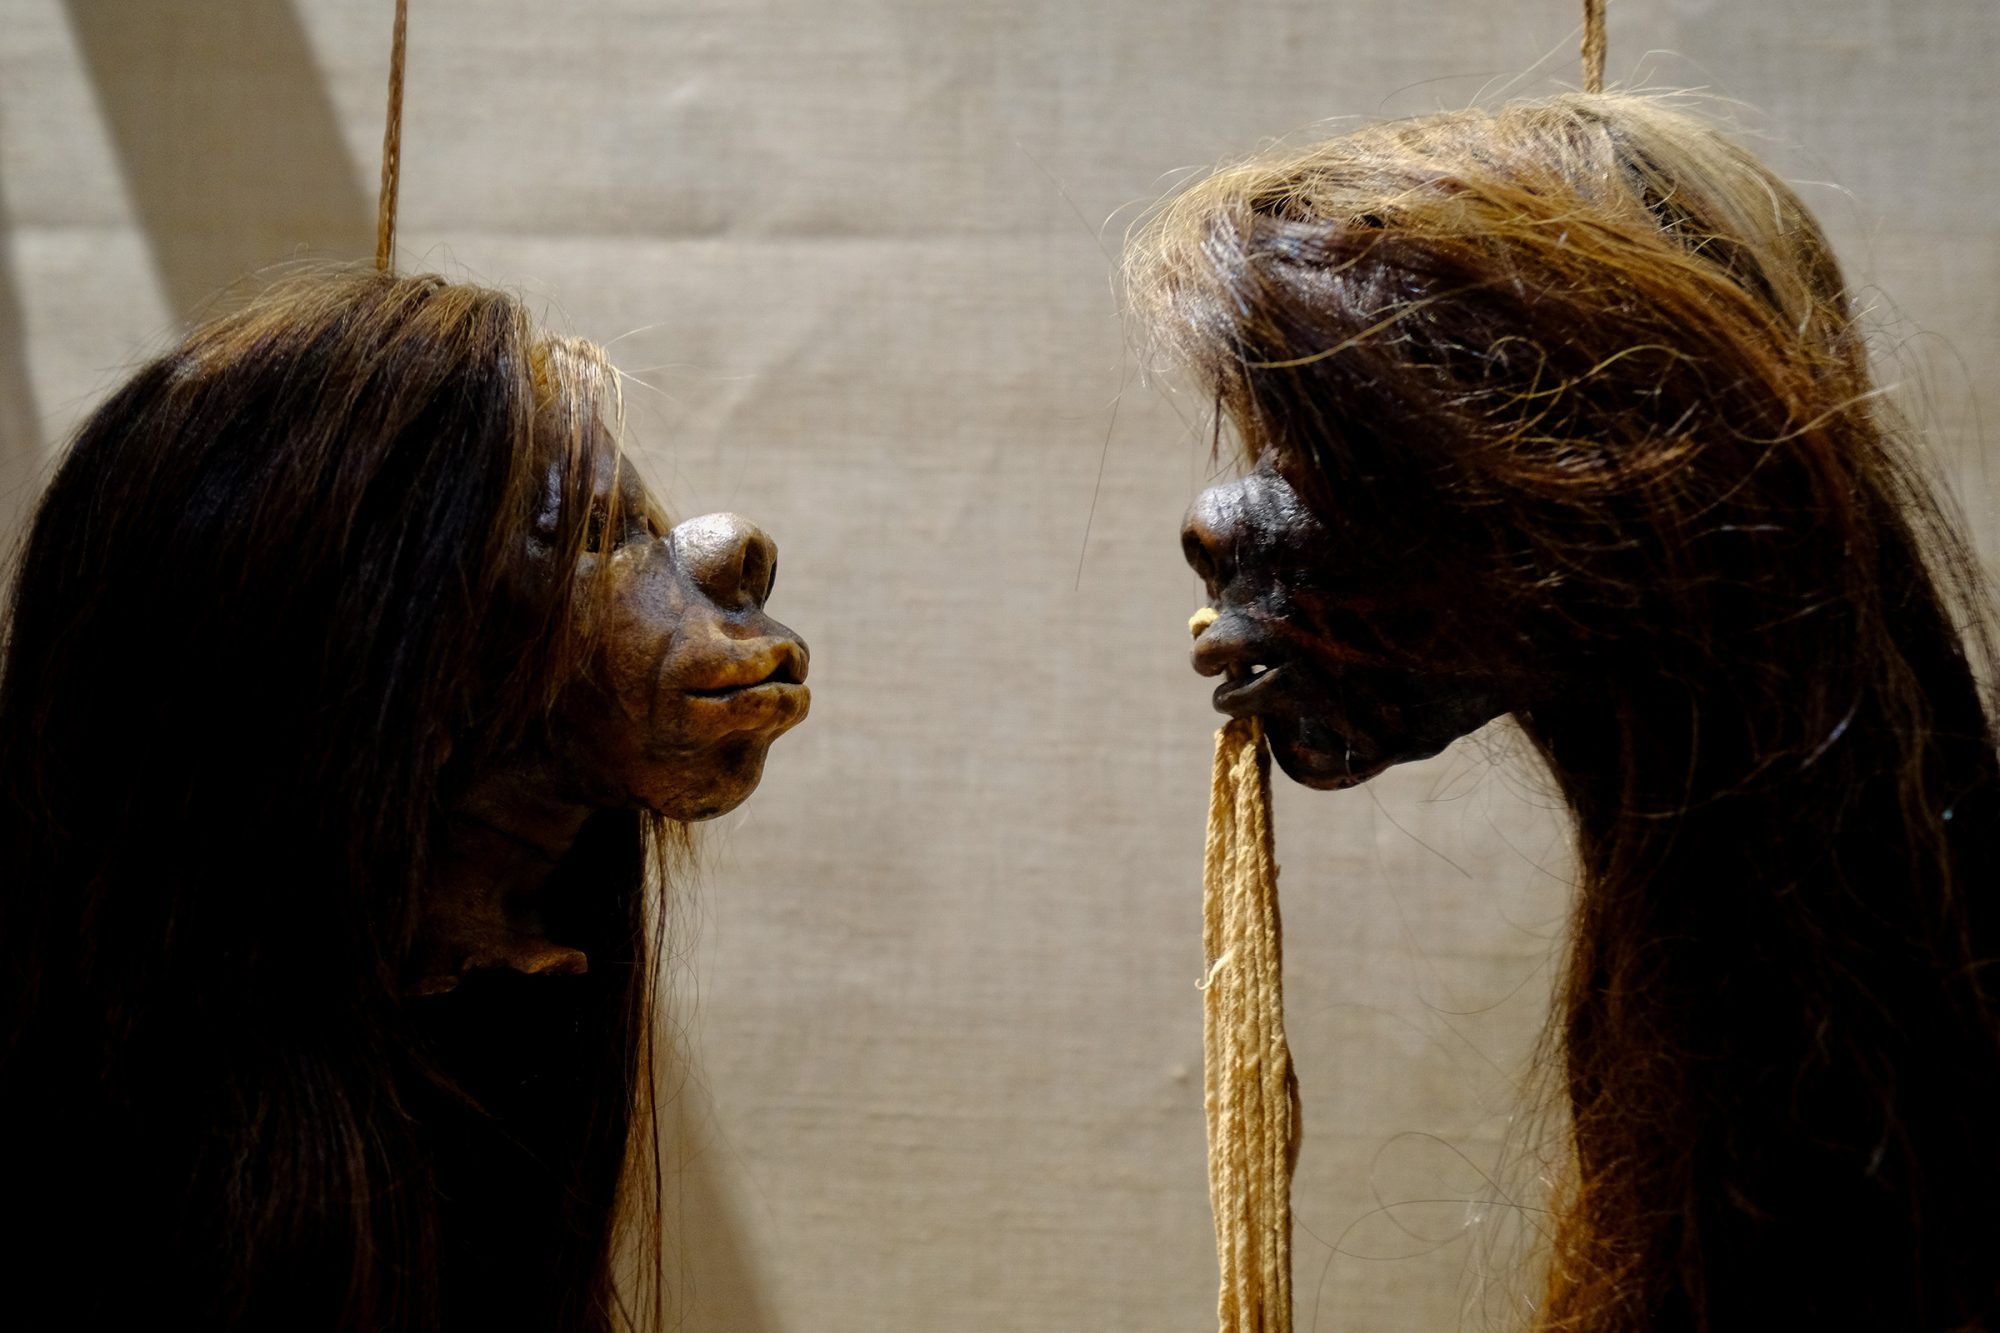 Pitt Rivers Museum reopening reveals critical changes todisplays as part of decolonisation process